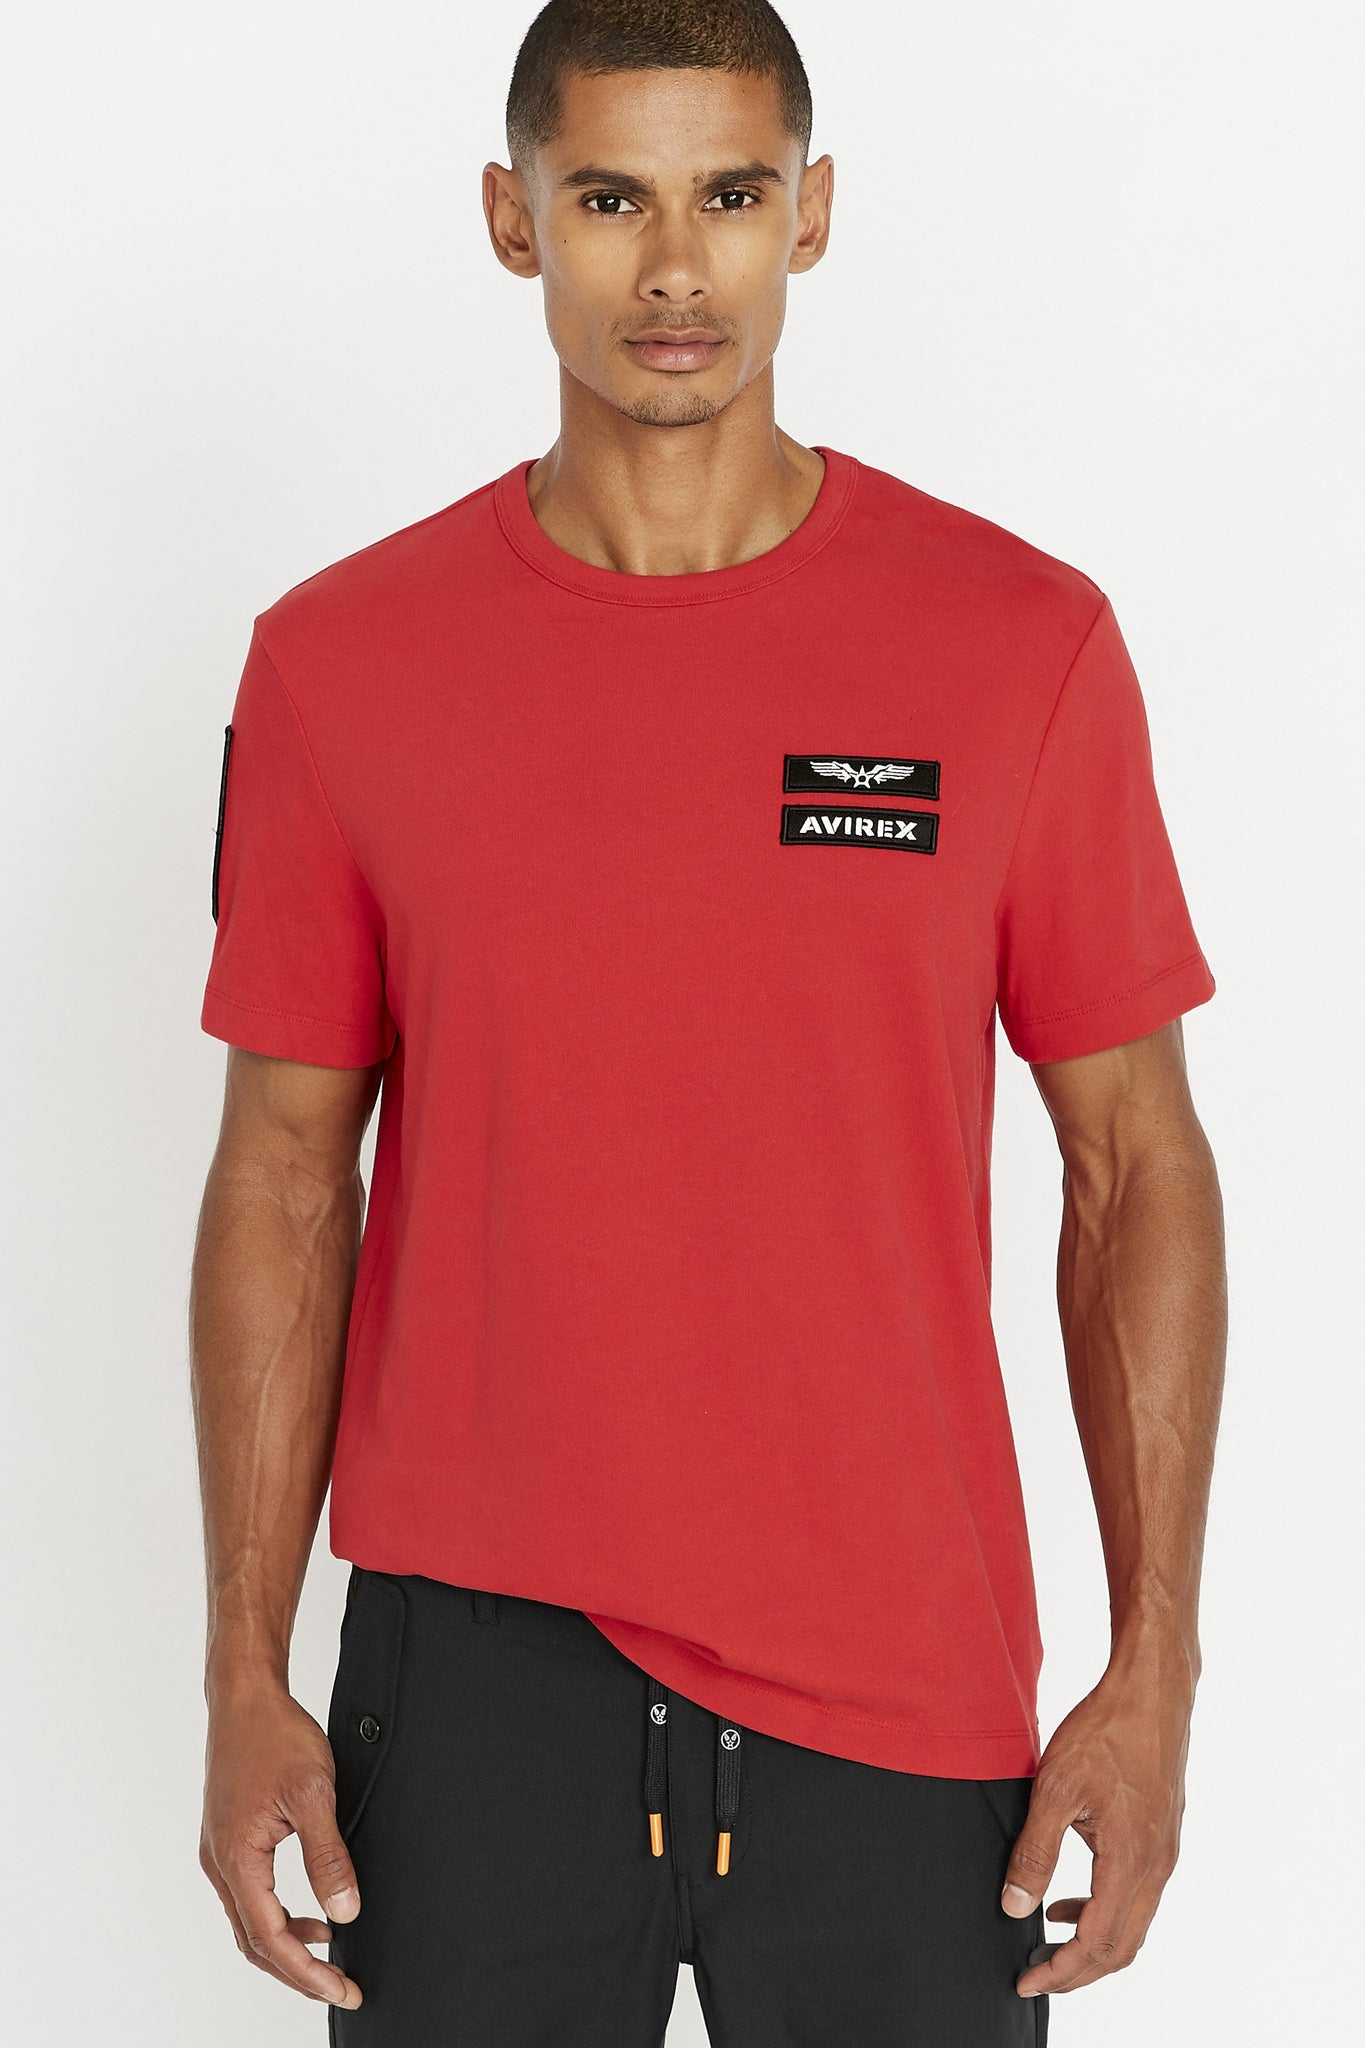 Men wearing a red short sleeve crew T-shirt with contrast Avirex logo and letters patches on left chest and a patch on right sleeve